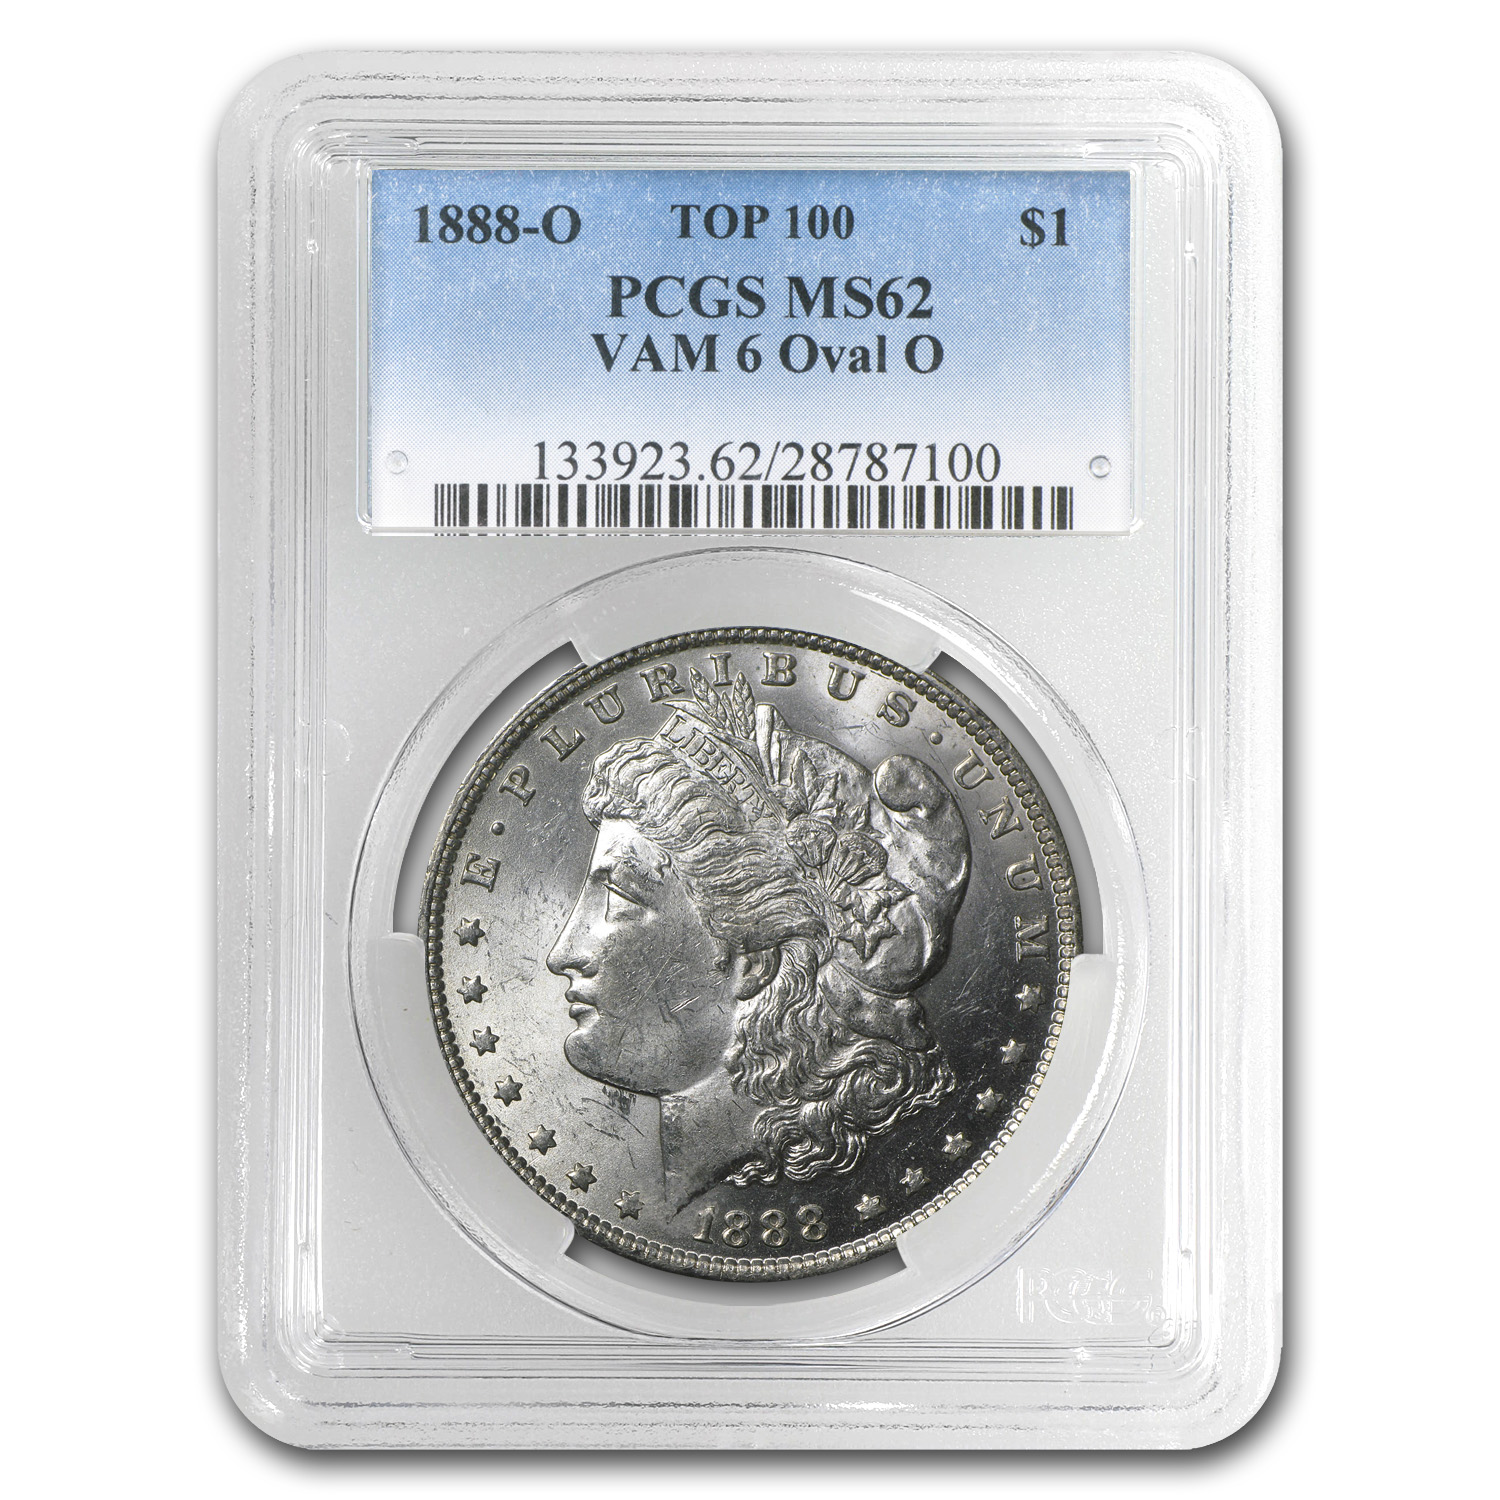 1888-O Morgan Dollar - MS-62 PCGS VAM-6 Oval O Top-100